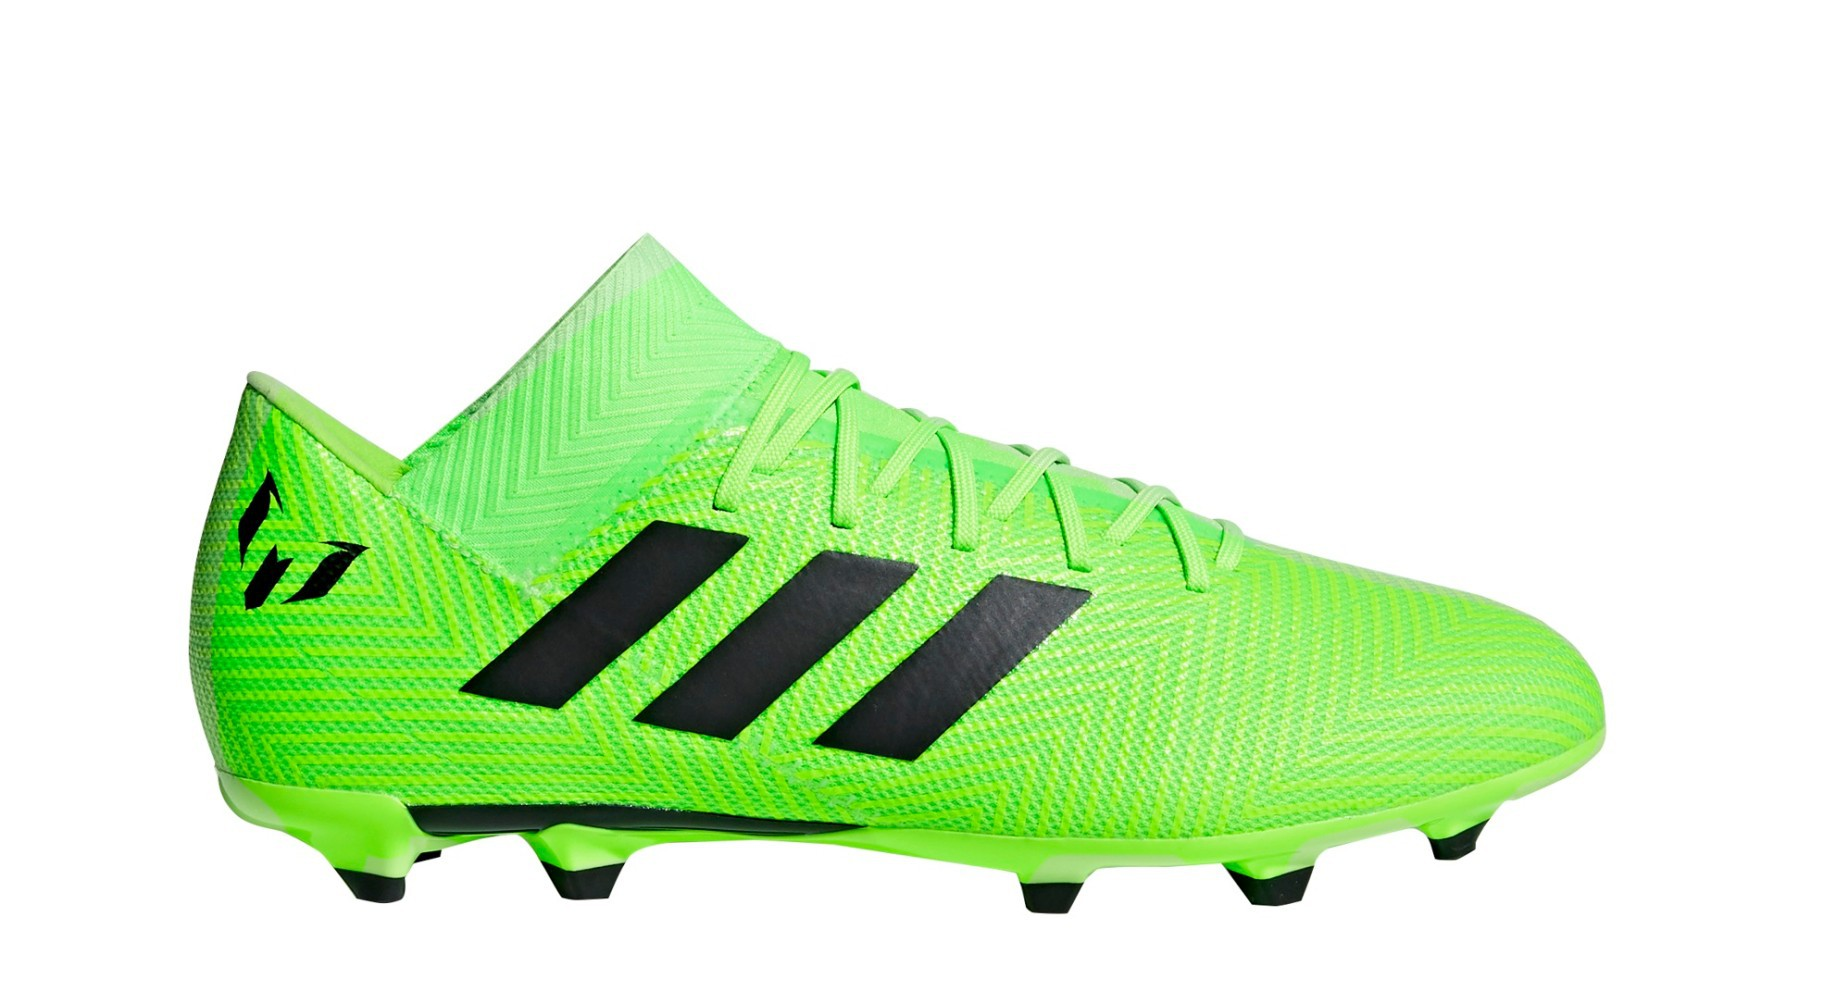 the latest 273a8 c104c Adidas Football boots Nemeziz Messi Edition 18.3 FG Energy Mode Pack colore  Green Black - Adidas - SportIT.com